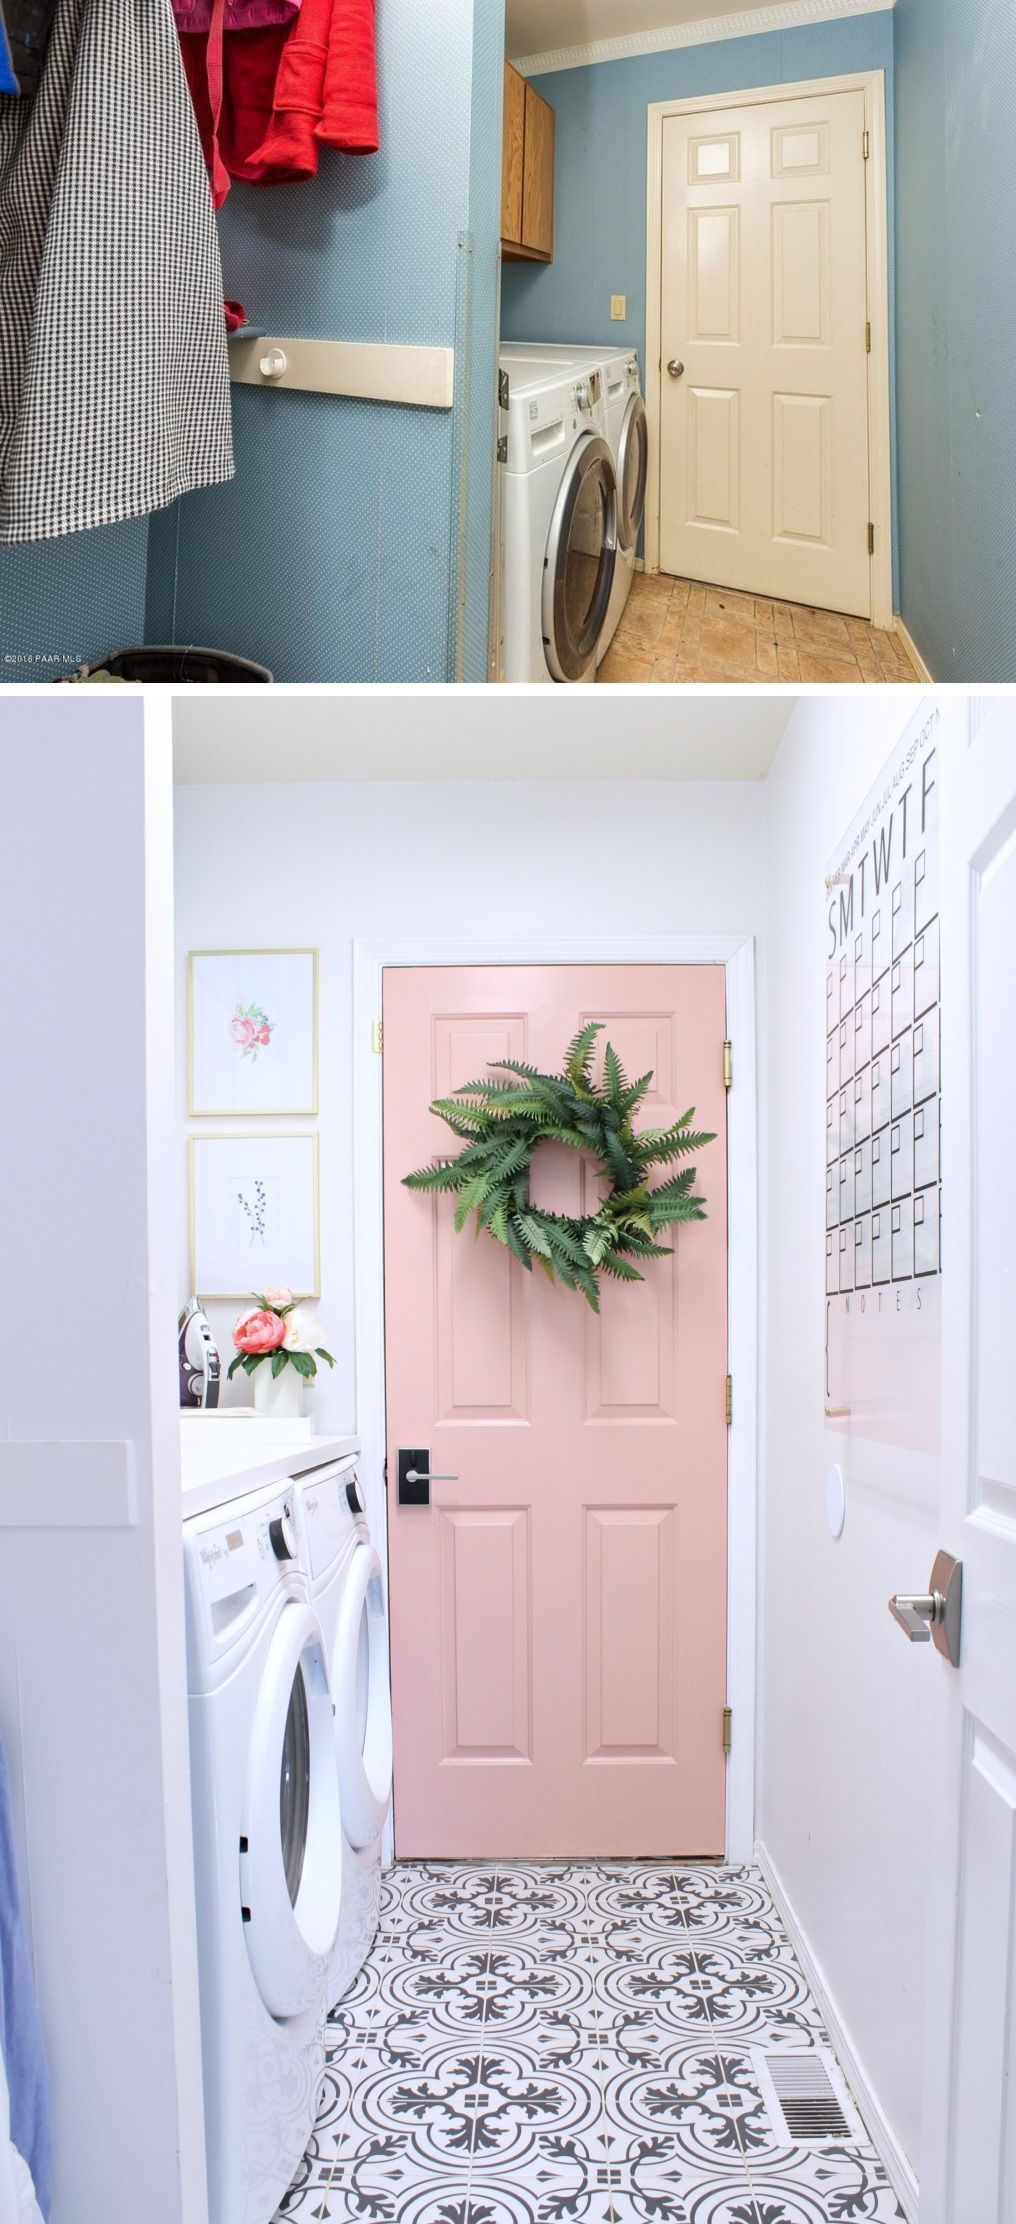 Inspiring Laundry Room Makeover Ideas With Amazing Results